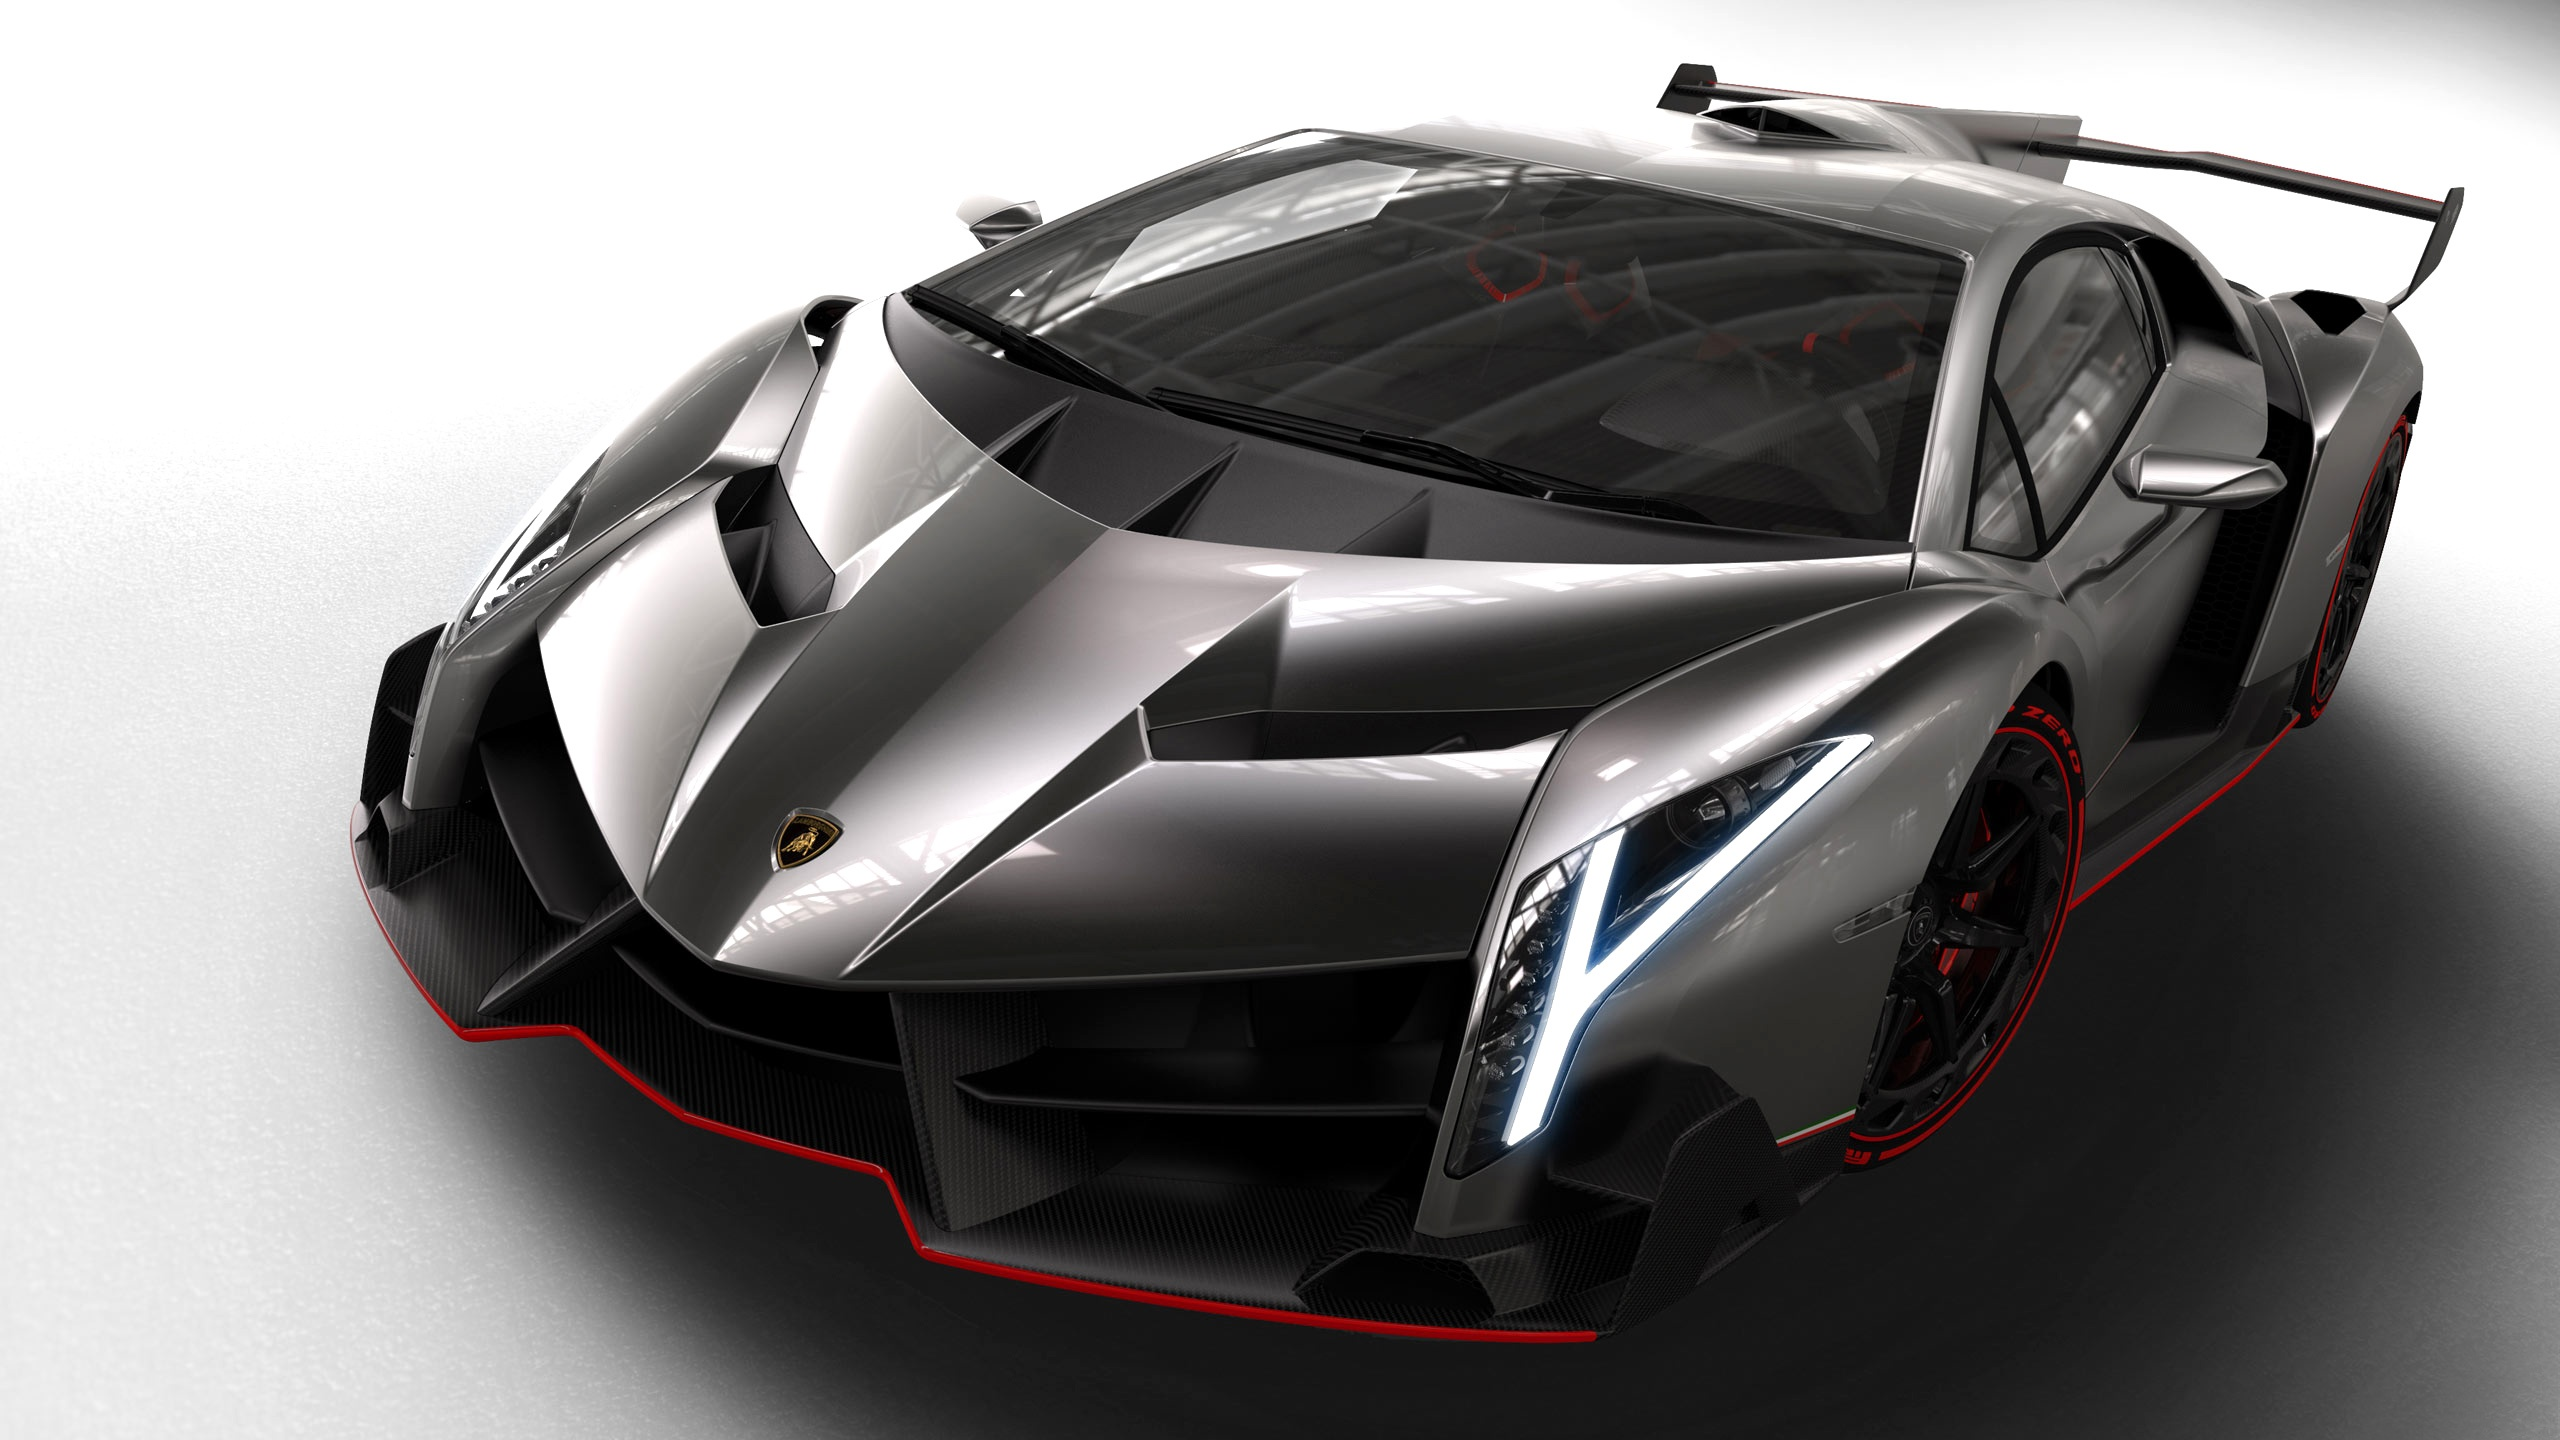 16 Lamborghini Veneno HD Wallpapers